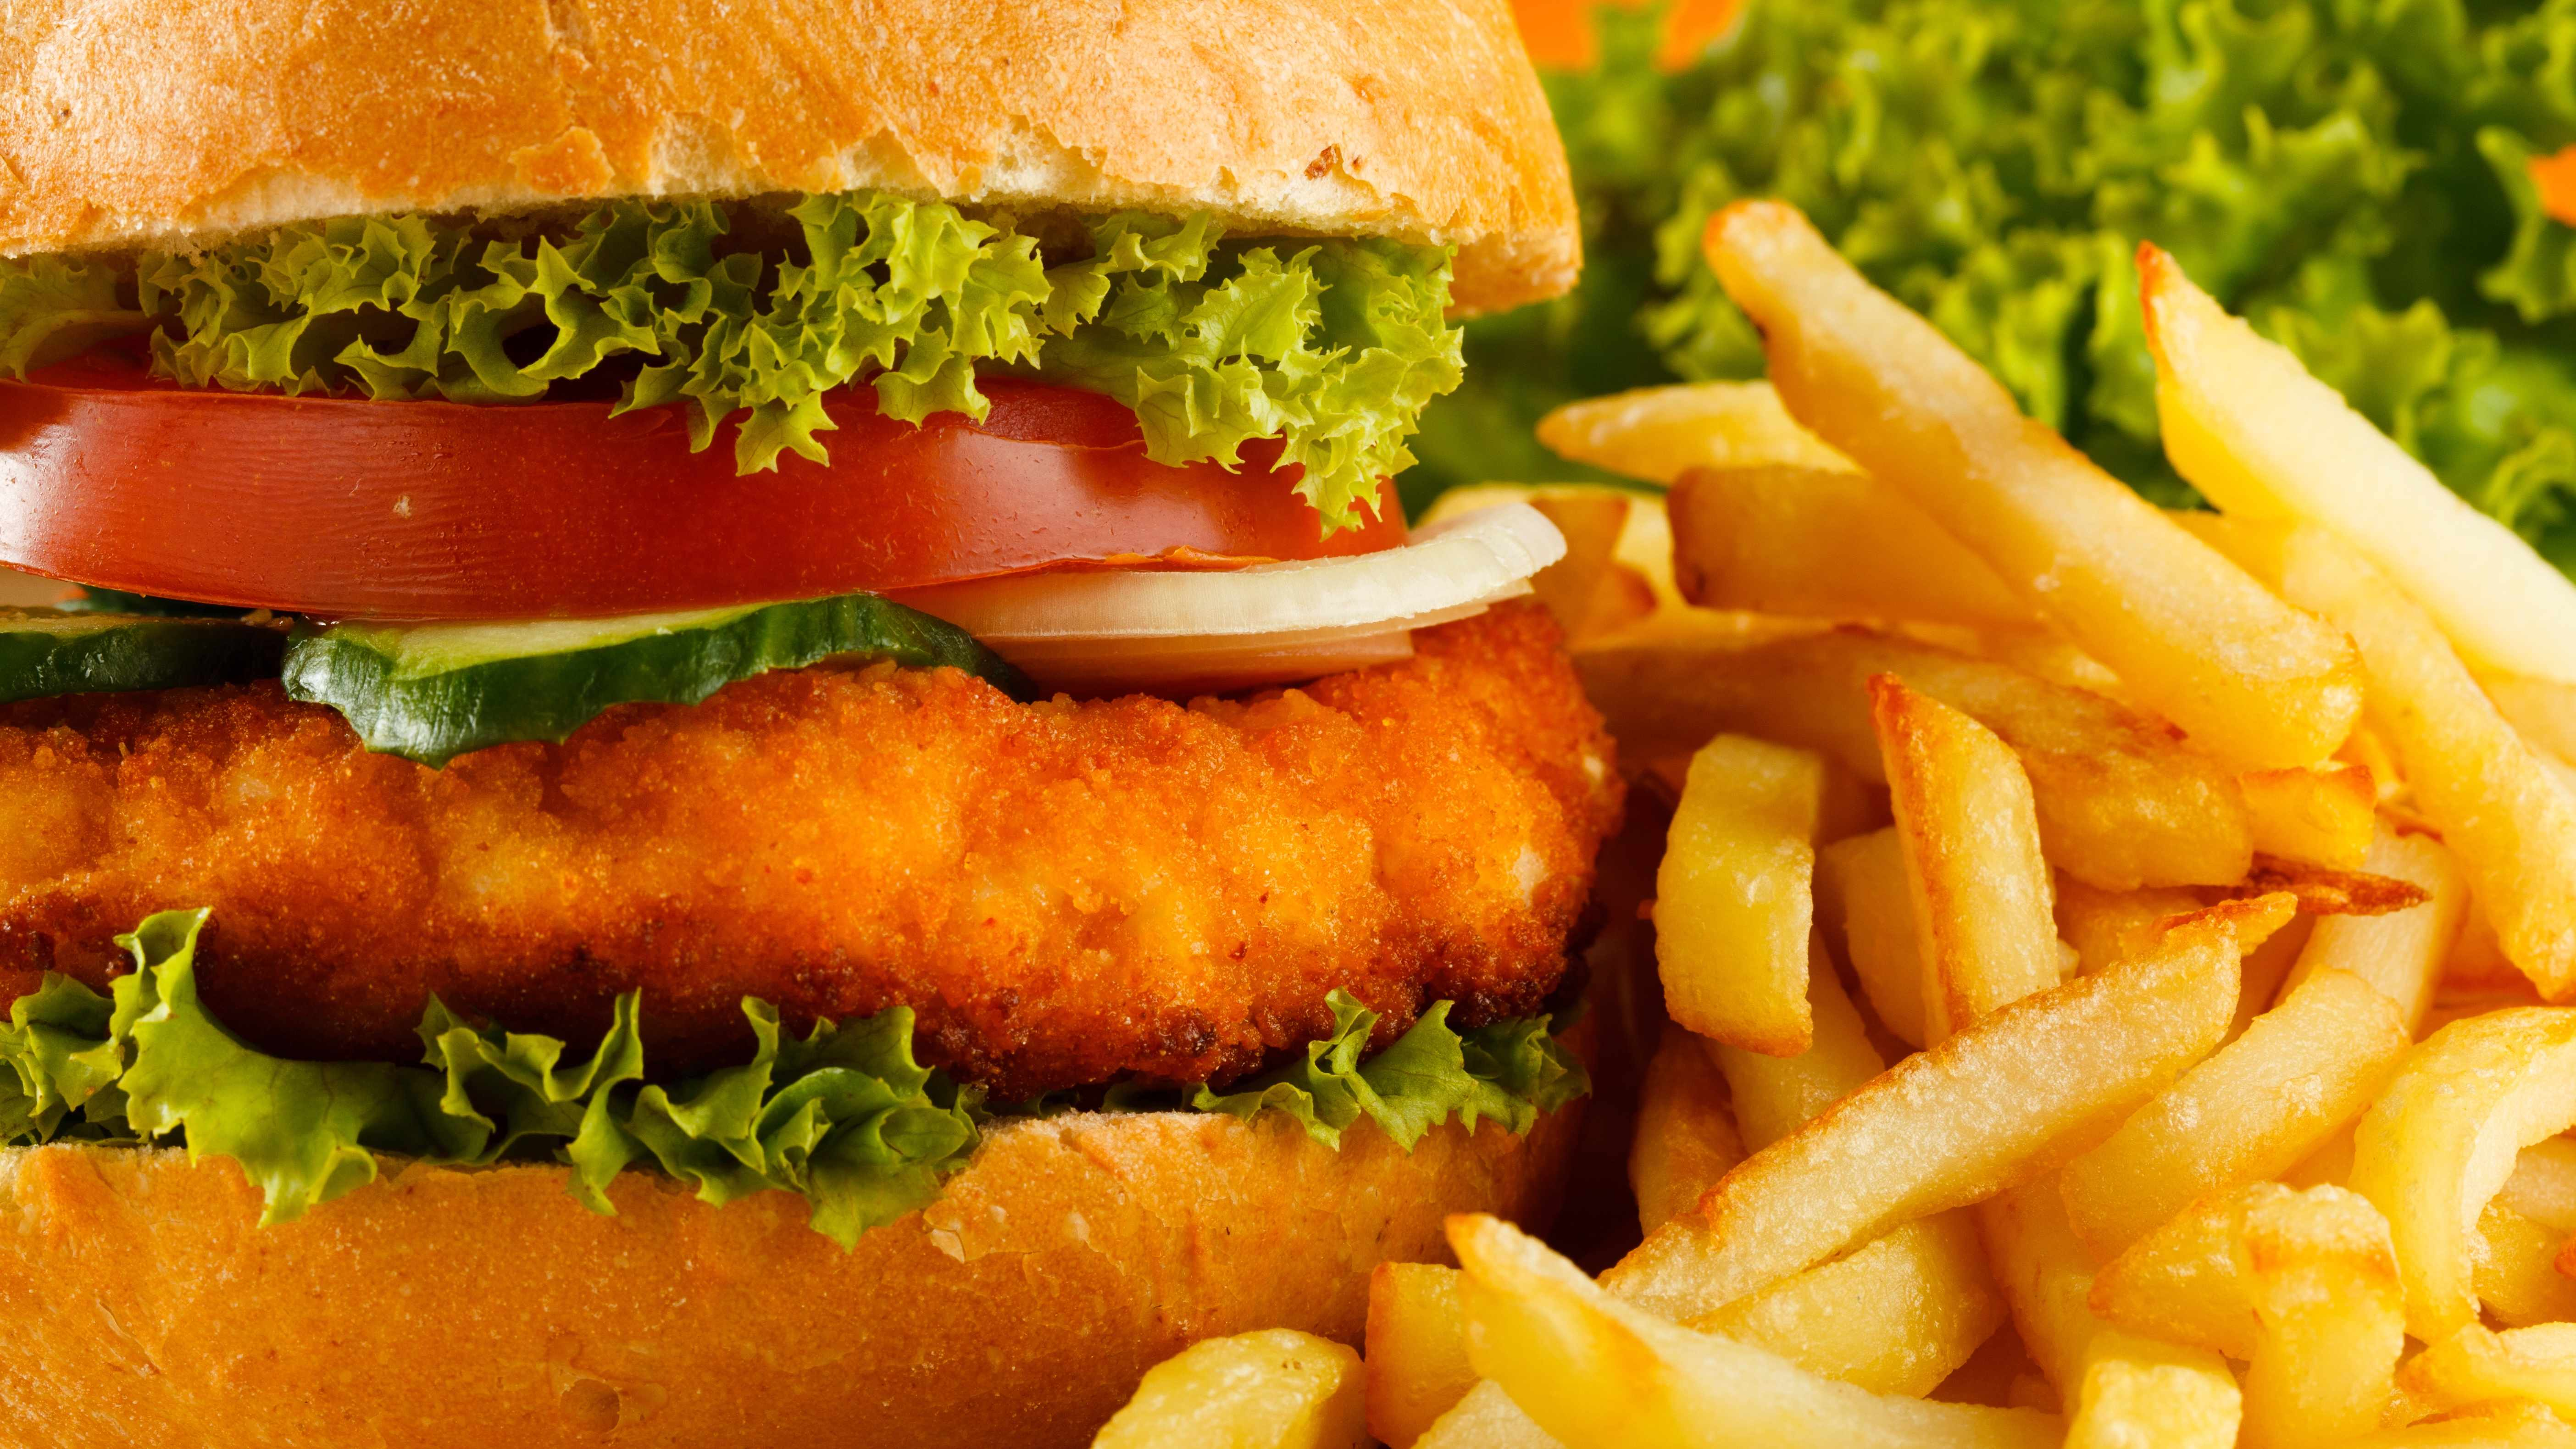 fast food meal, chicken sandwich, french fries